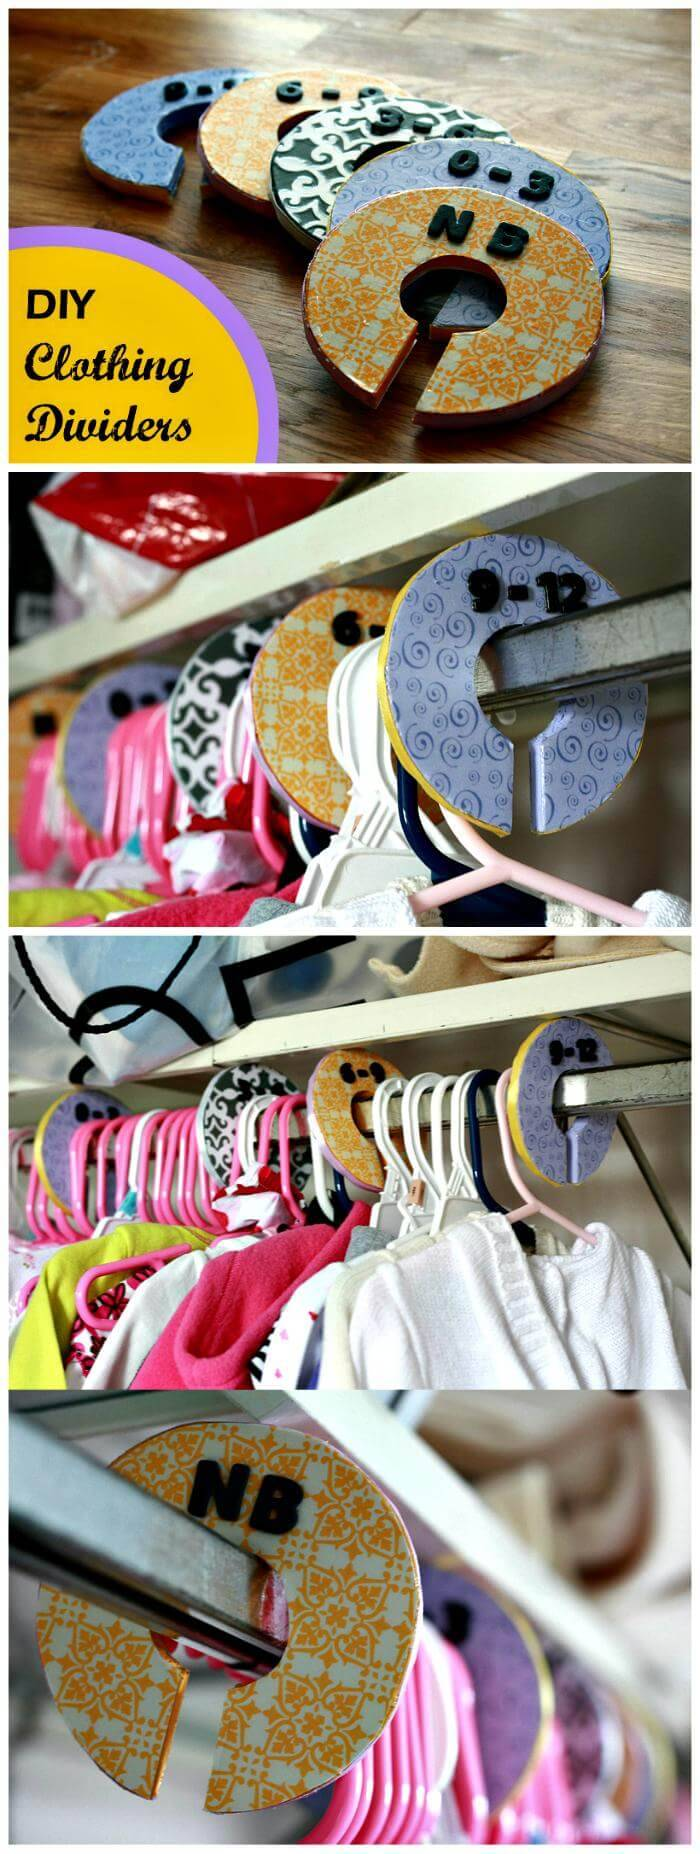 DIY Clothing Dividers